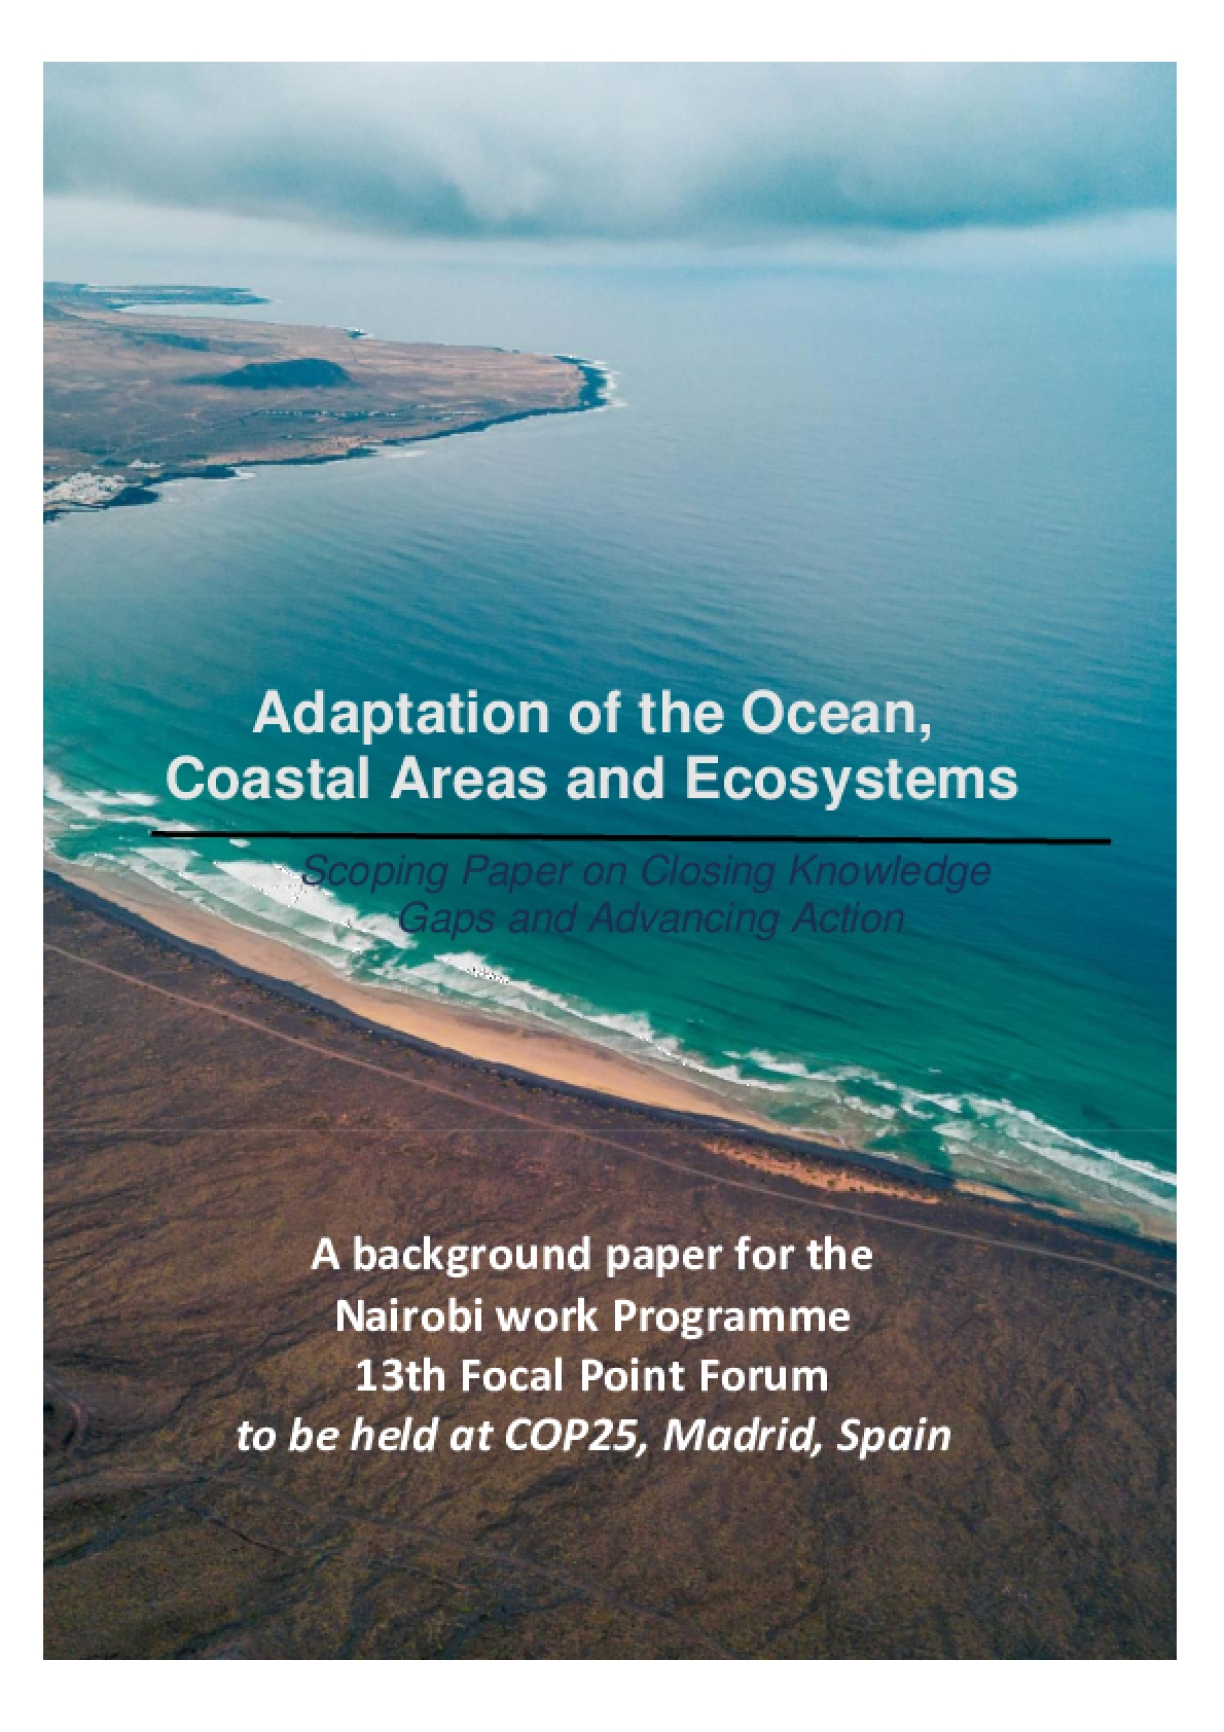 Adaptation of the Ocean, Coastal Areas and Ecosystems: Scoping Paper on Closing Knowledge Gaps and Advancing Action